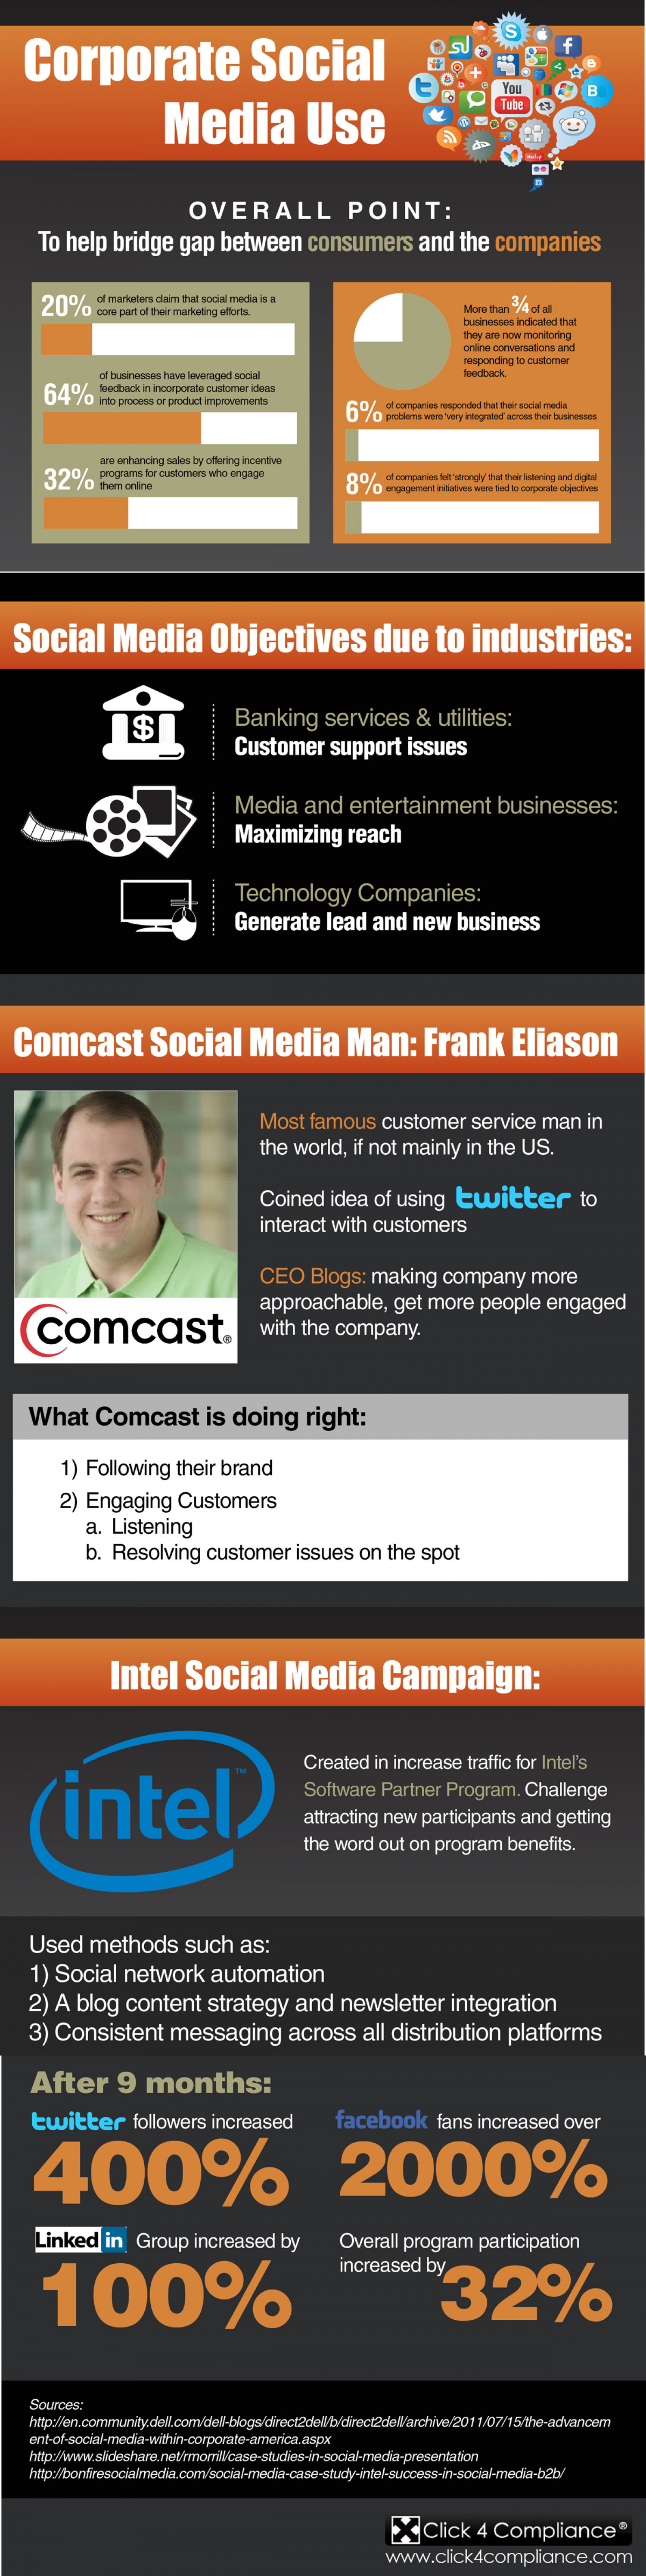 Corporate Social Media Use Infographic